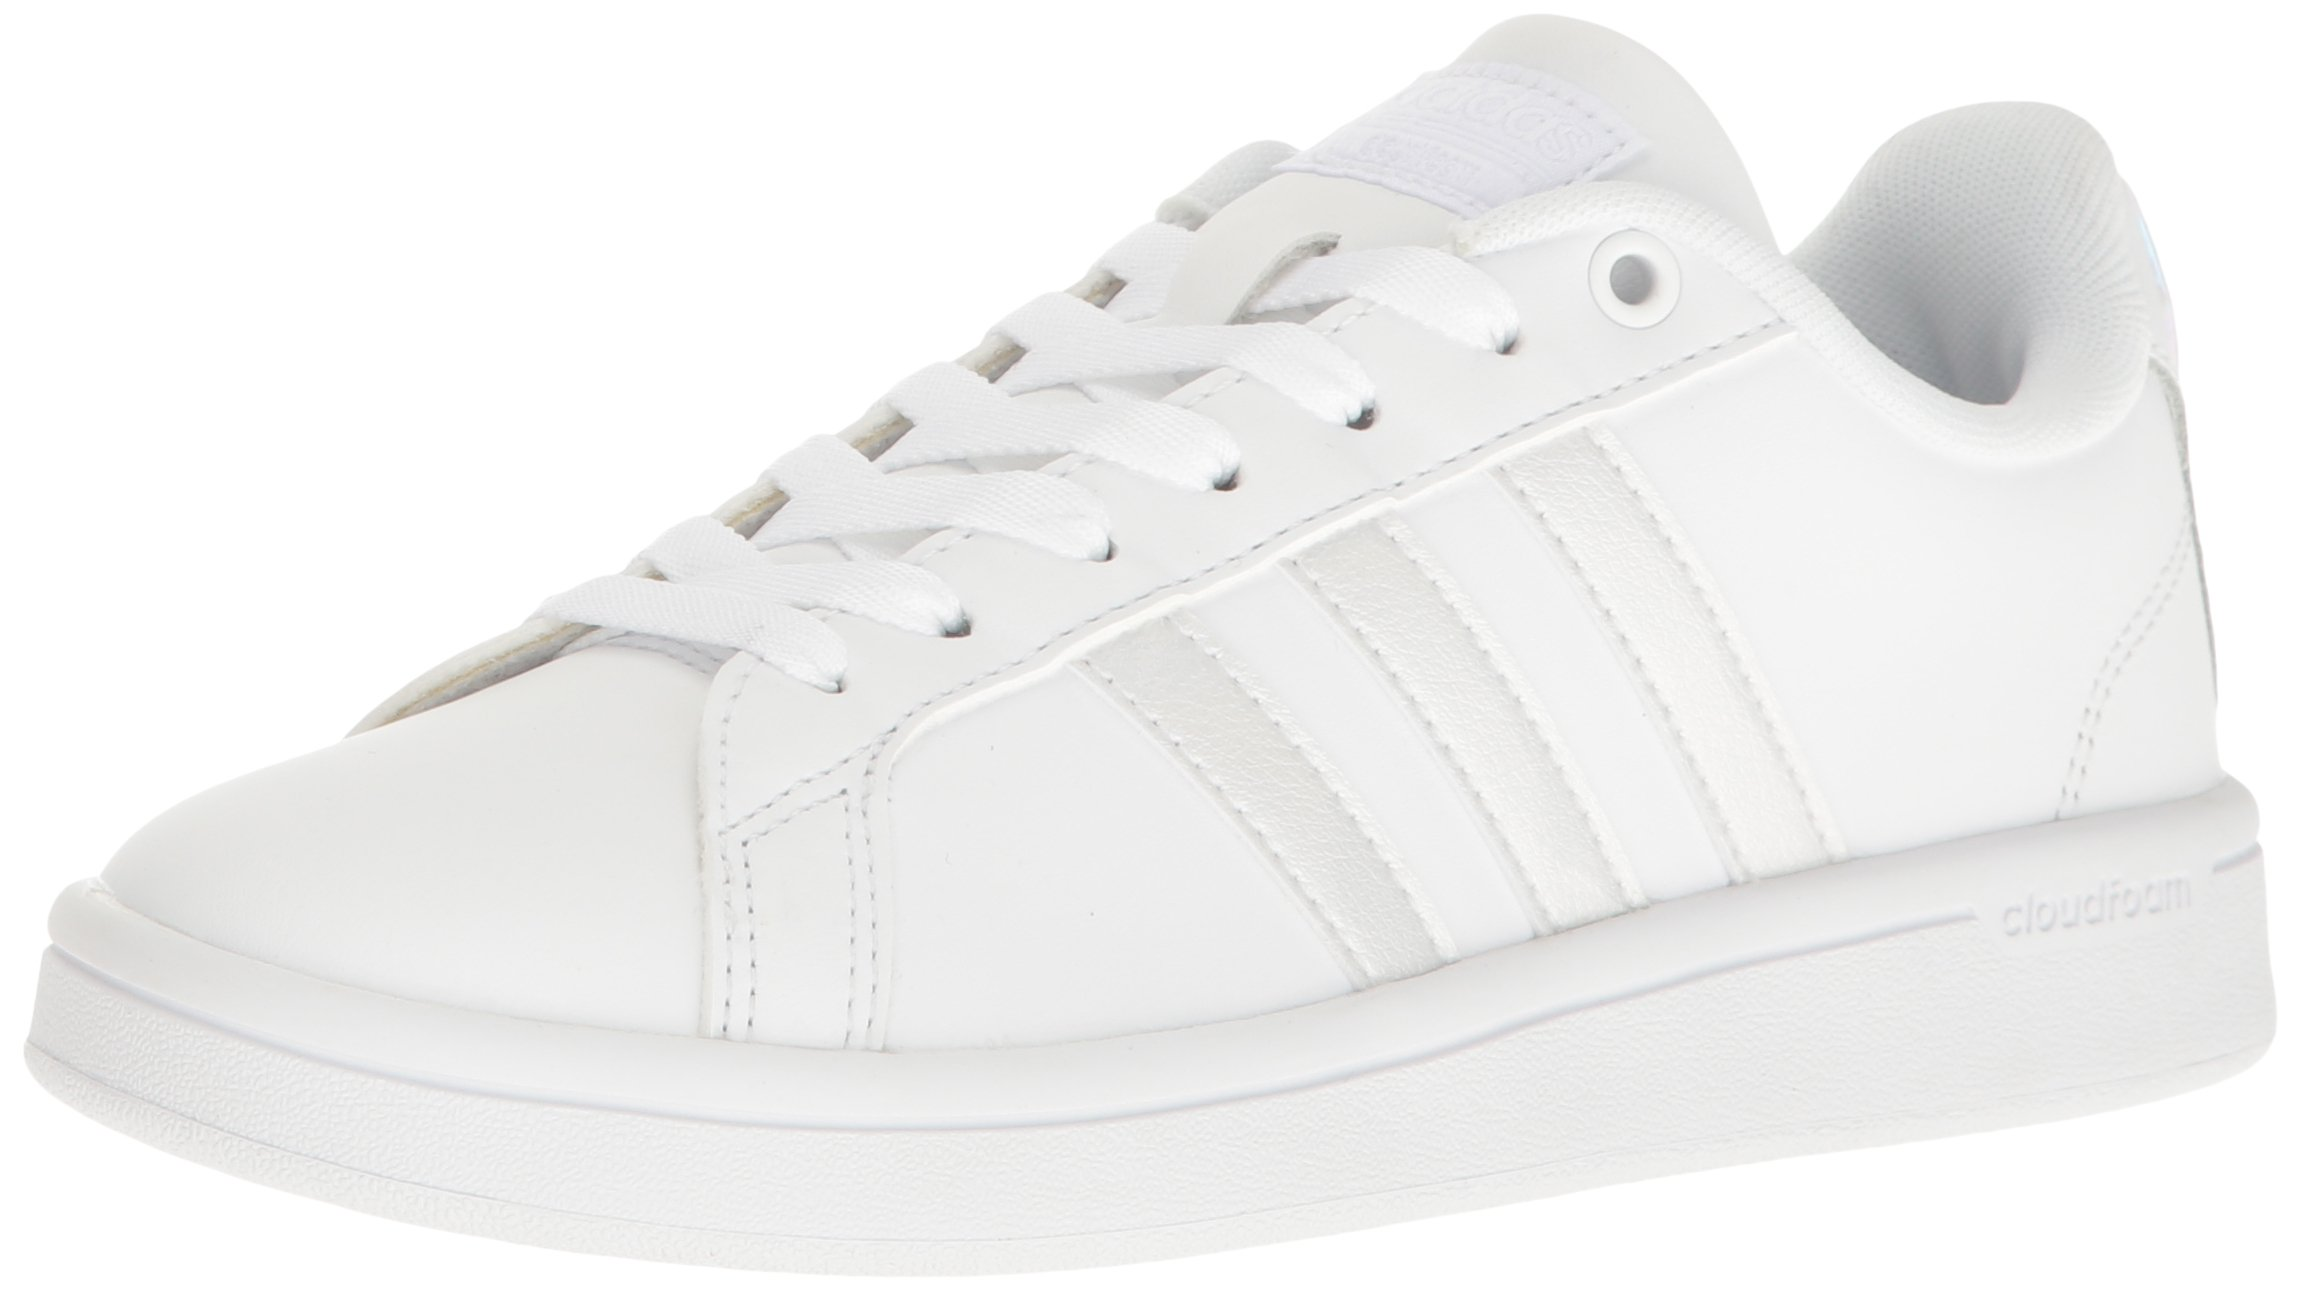 eaf010be063 Get Quotations · adidas Neo Women s Cloudfoam Advantage W Fashion Sneaker